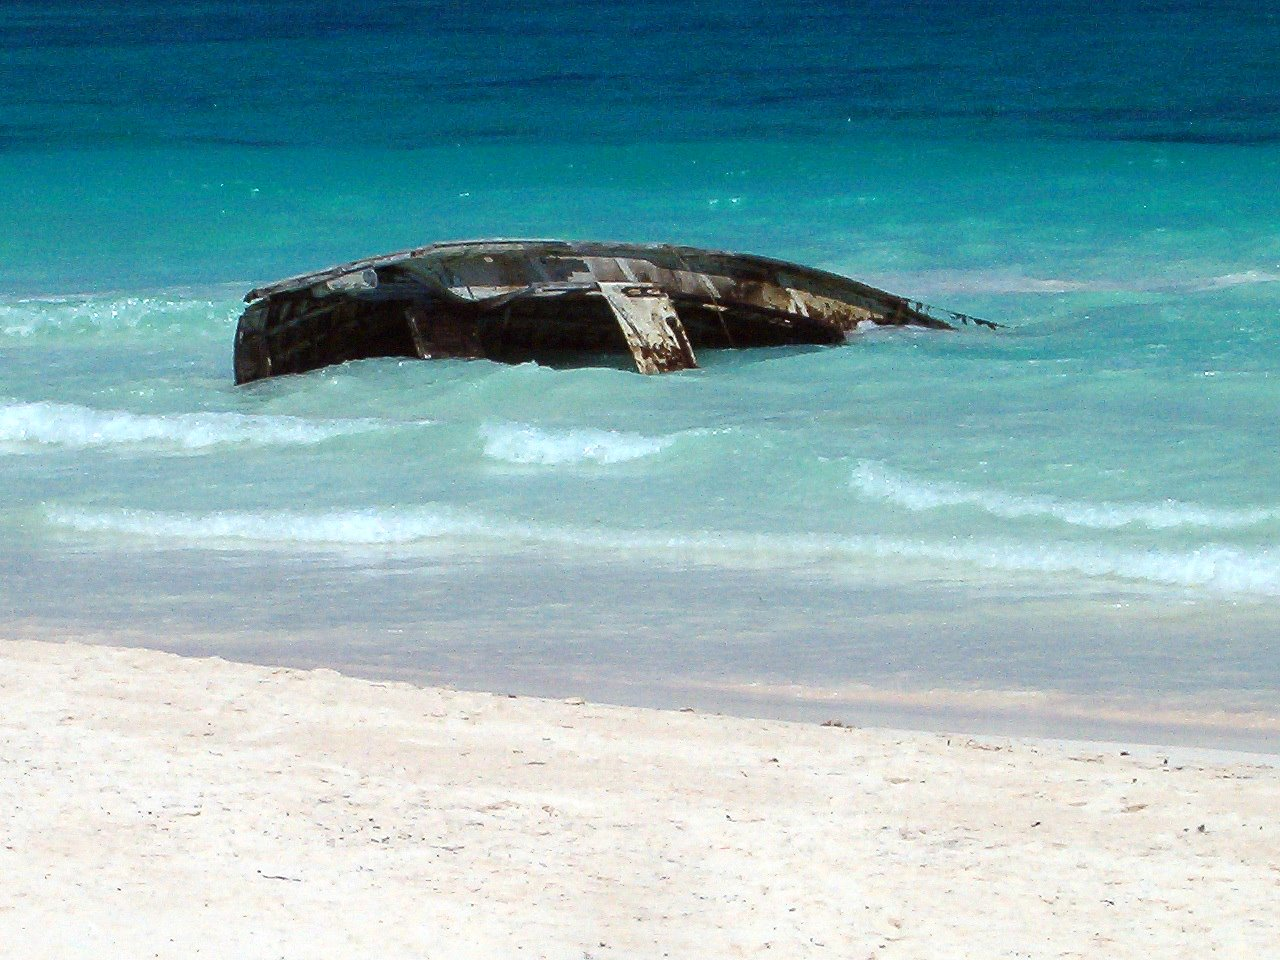 Ship wreck near Tulum, Mexico